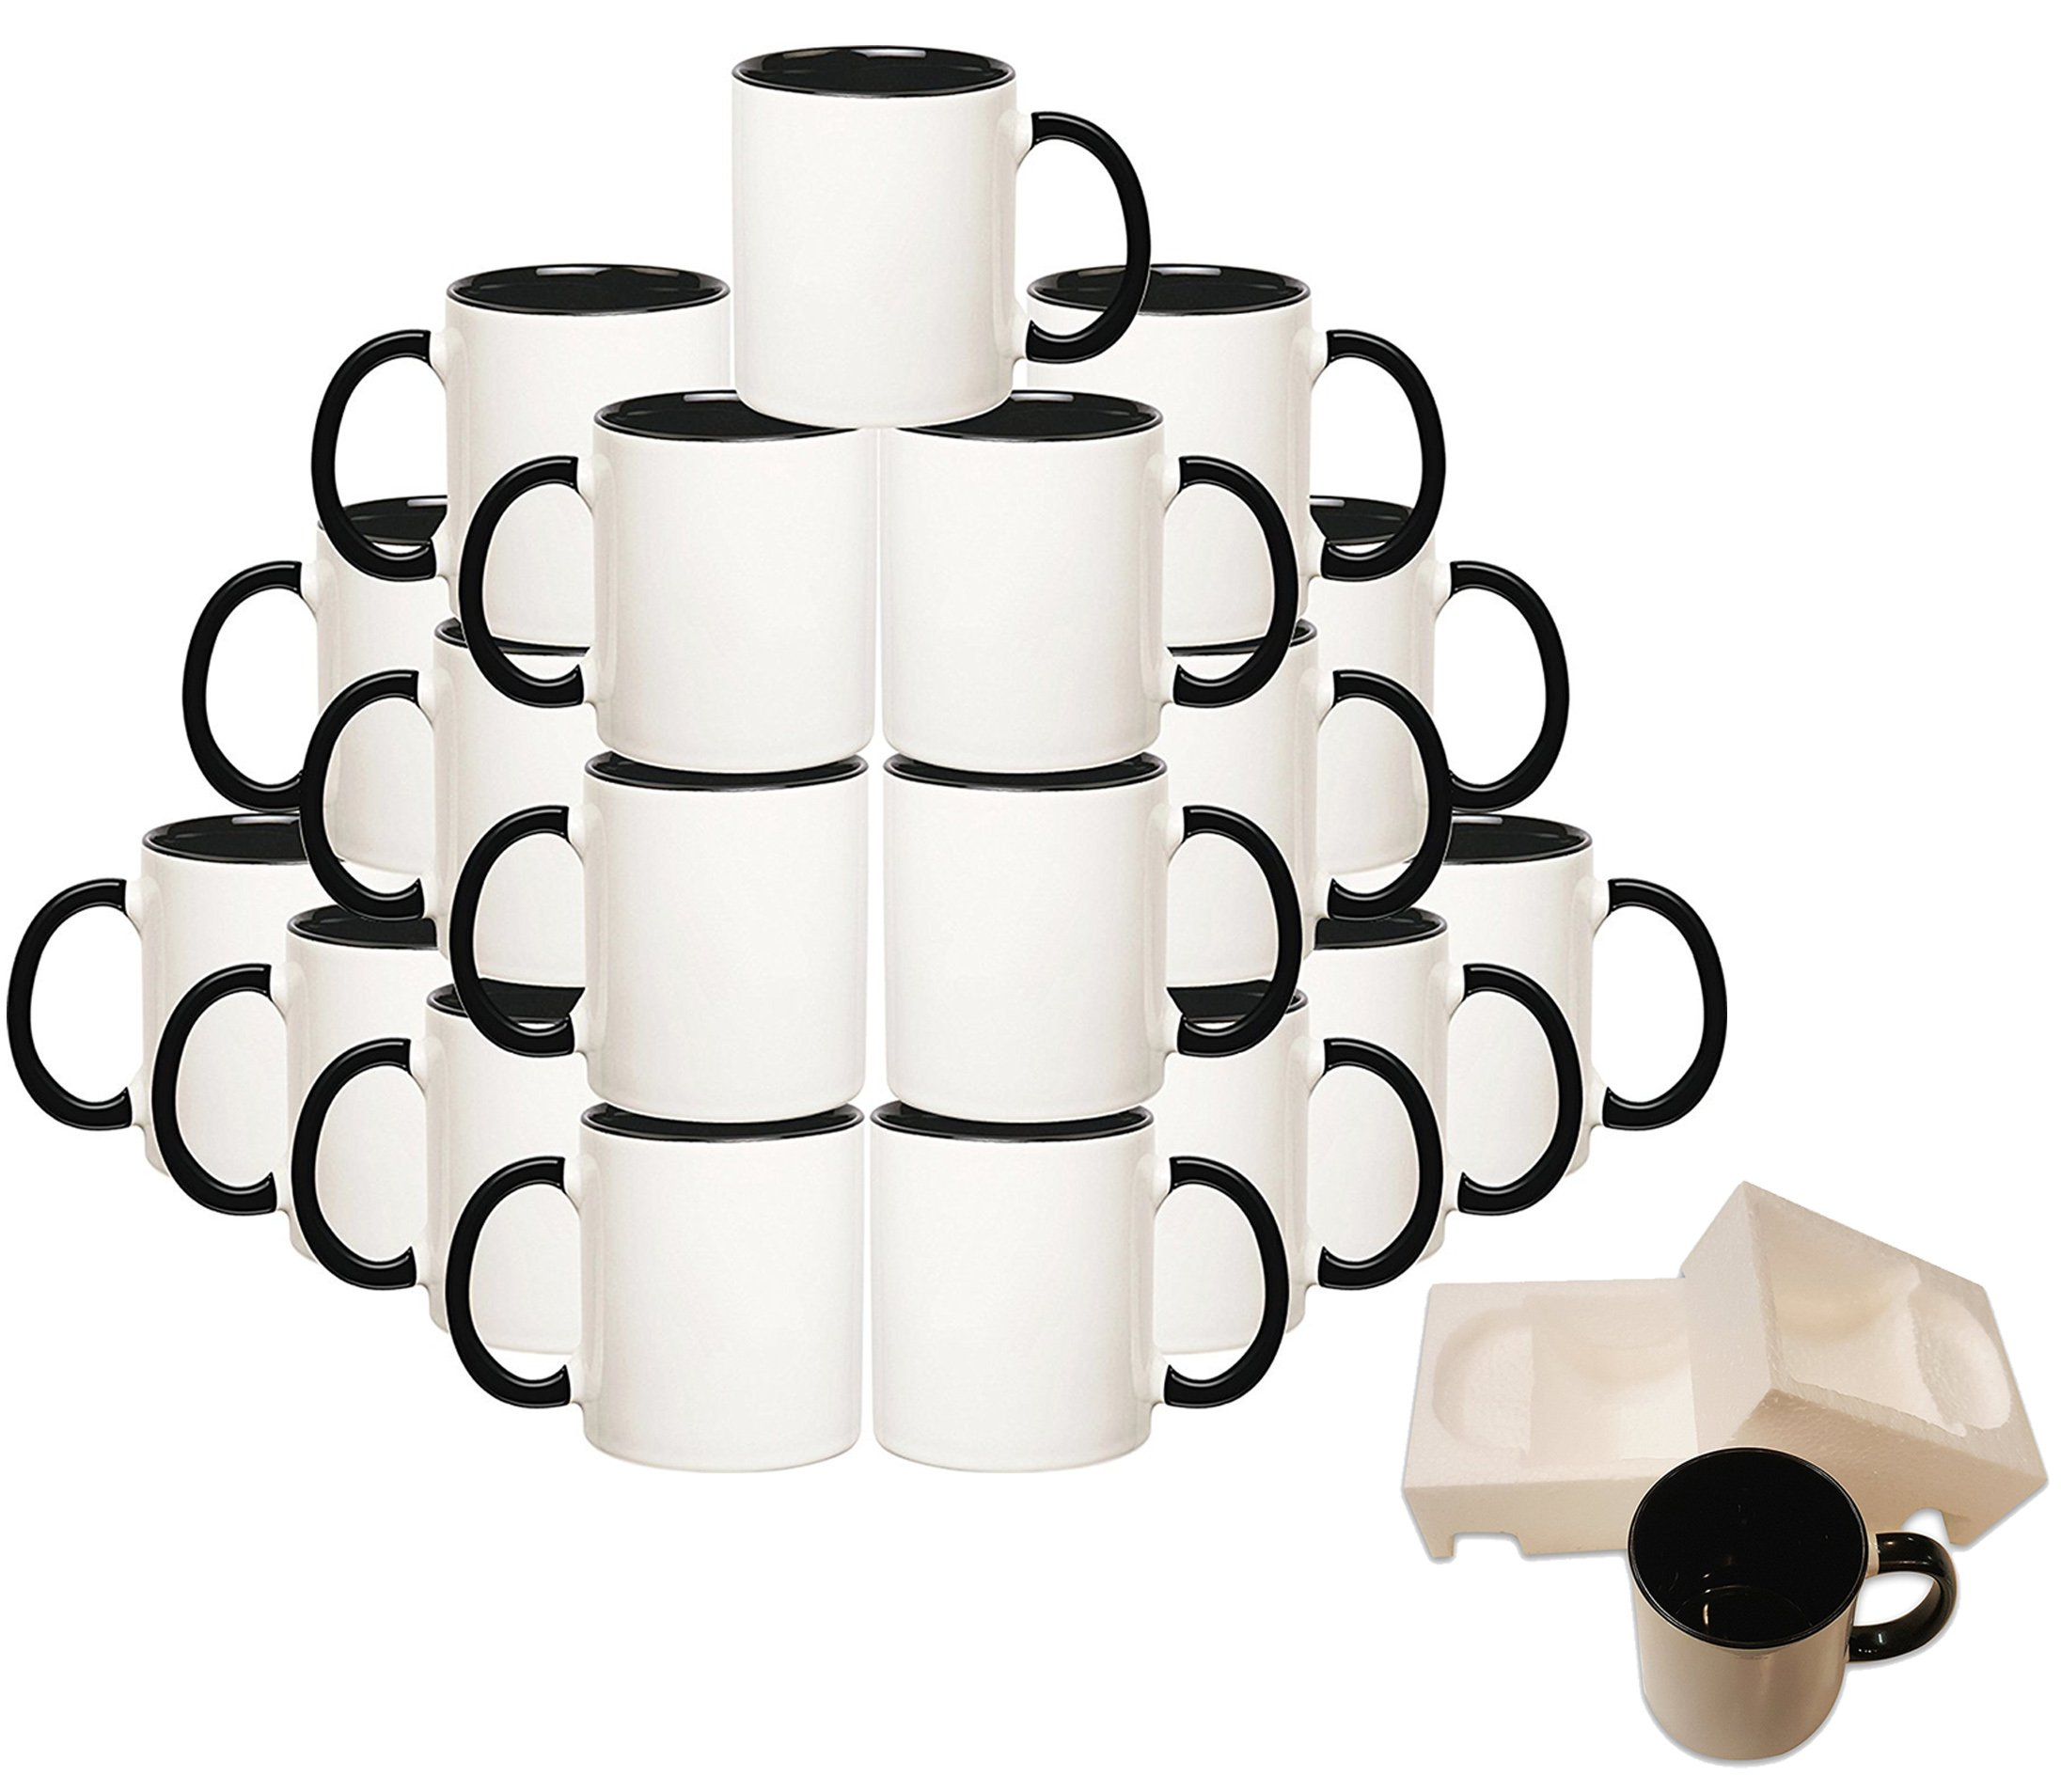 Mug 36-Piece Double Sublimation Coated Ceramic Mugs, 11 Oz, Blank All White and Black with Black Handle-Case of 36-Black by owndis